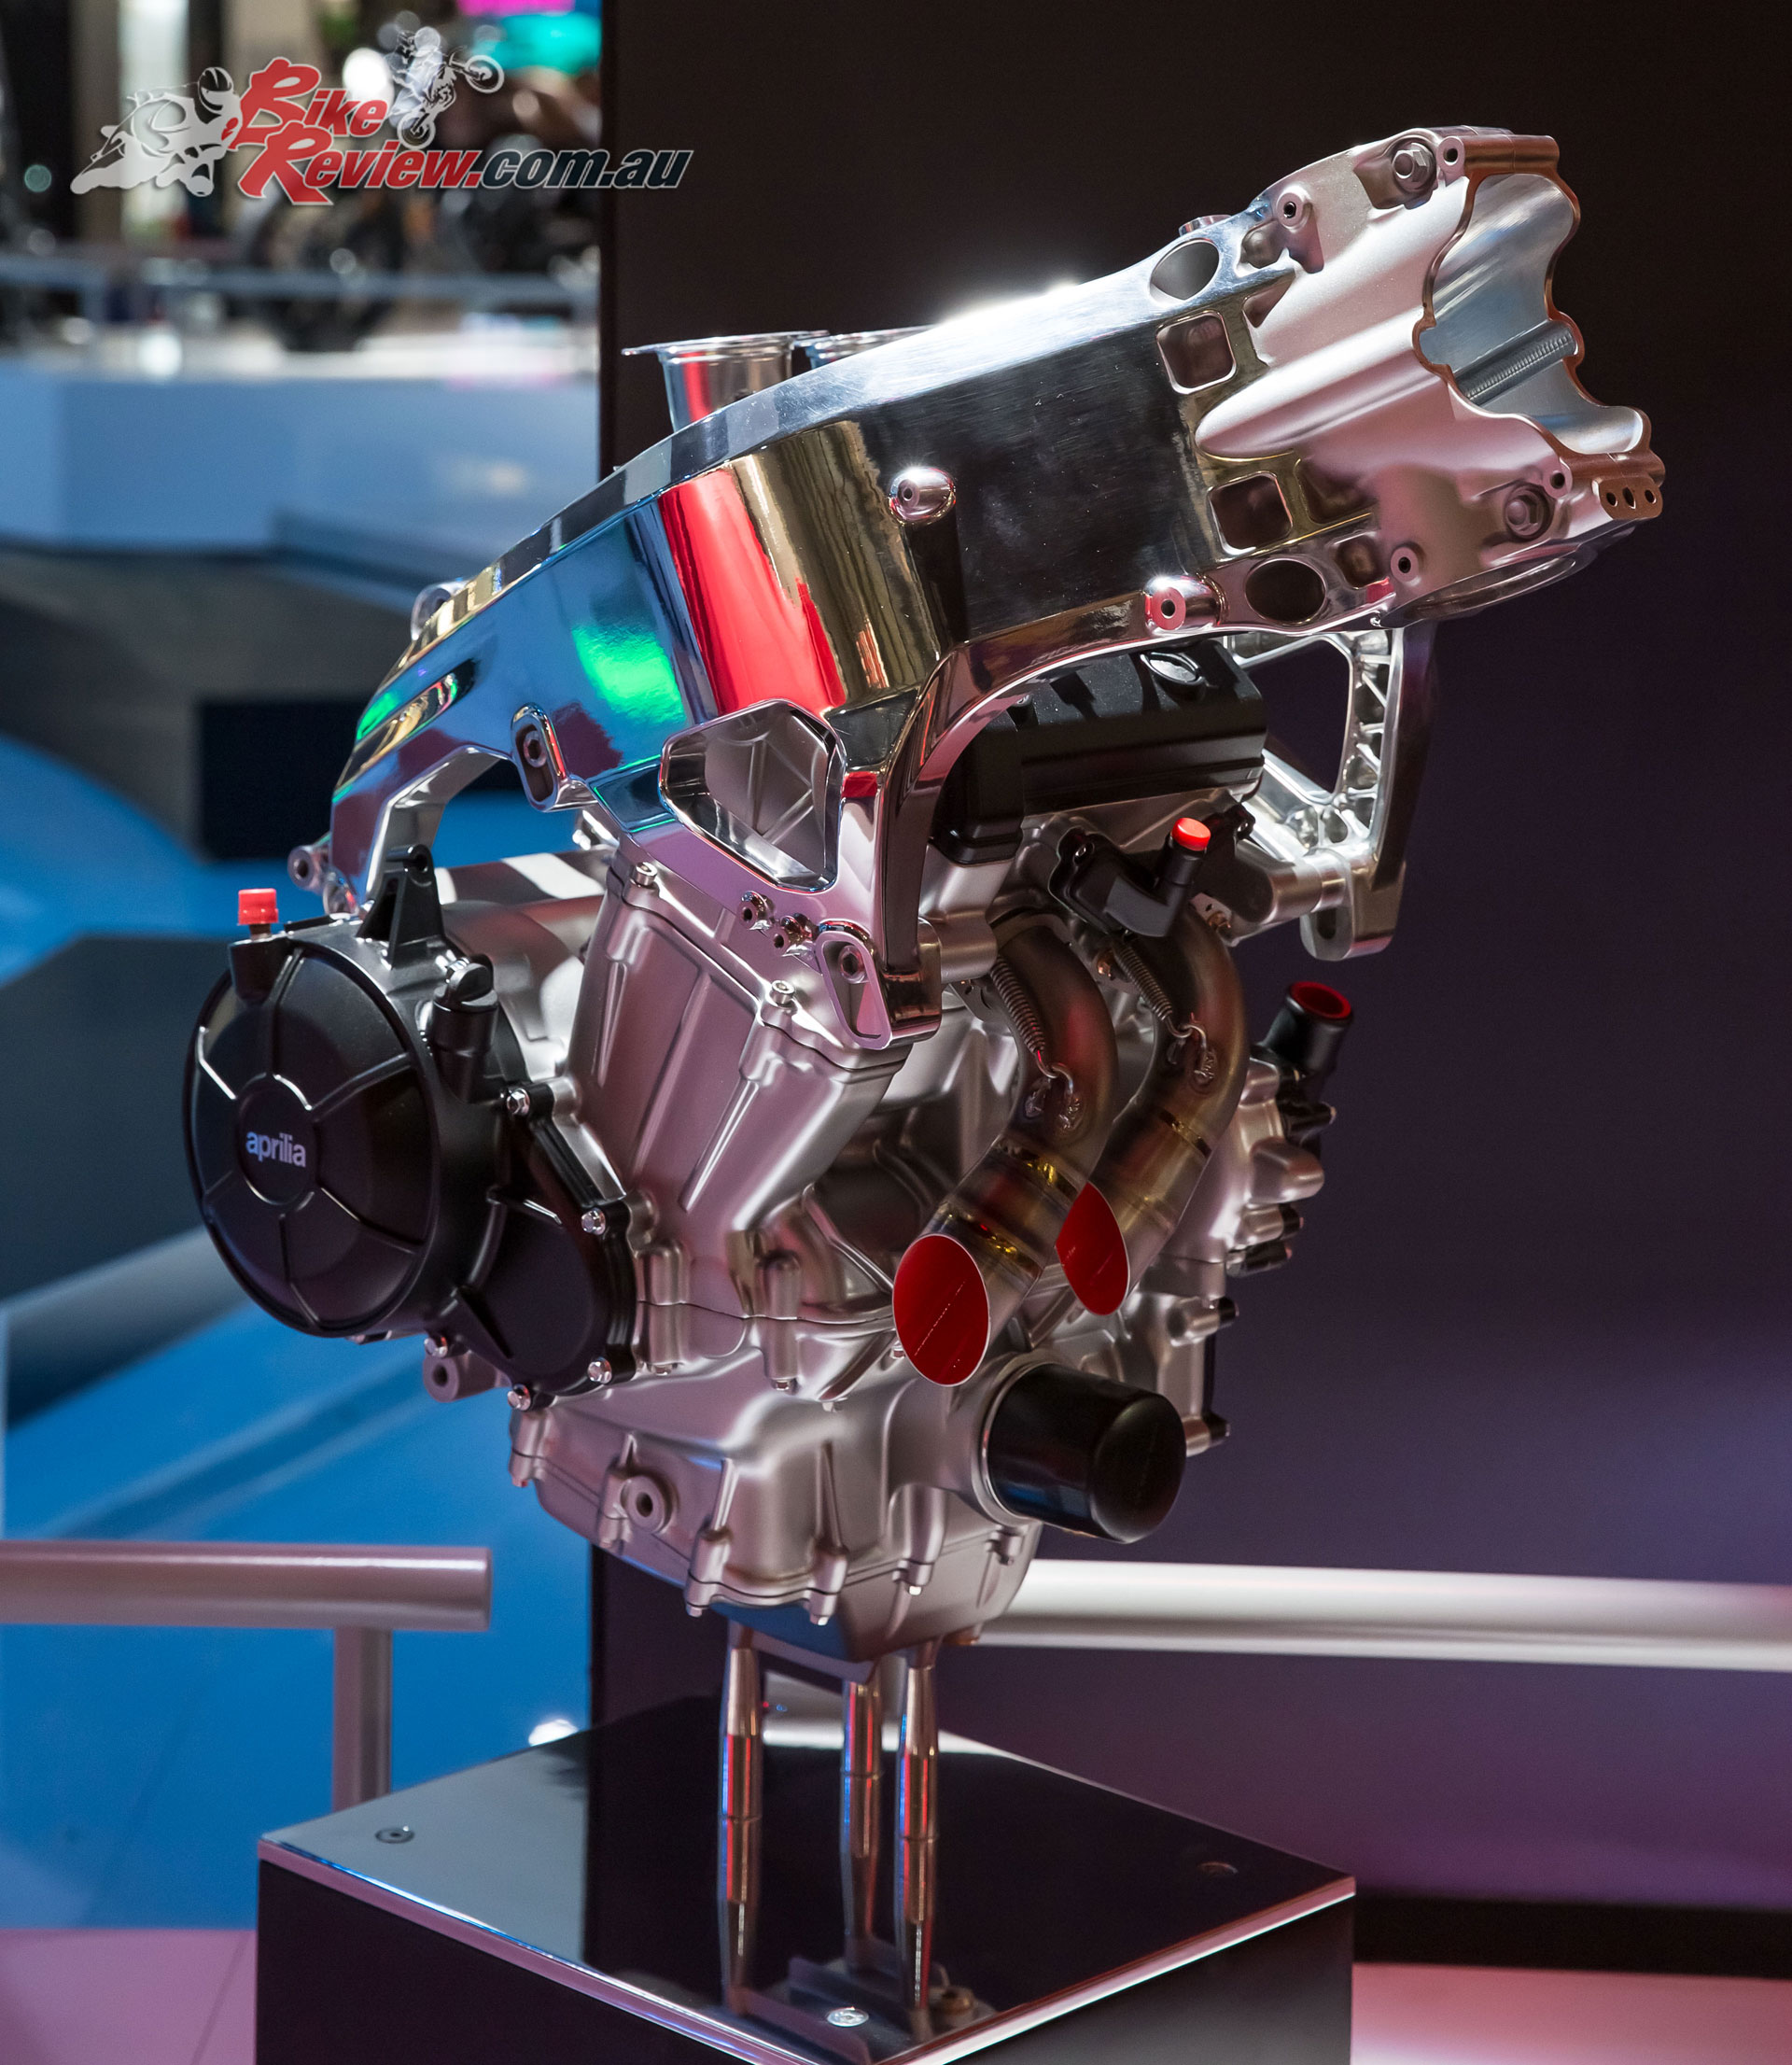 The engine is a stressed member and will be used for a range of models in the future.